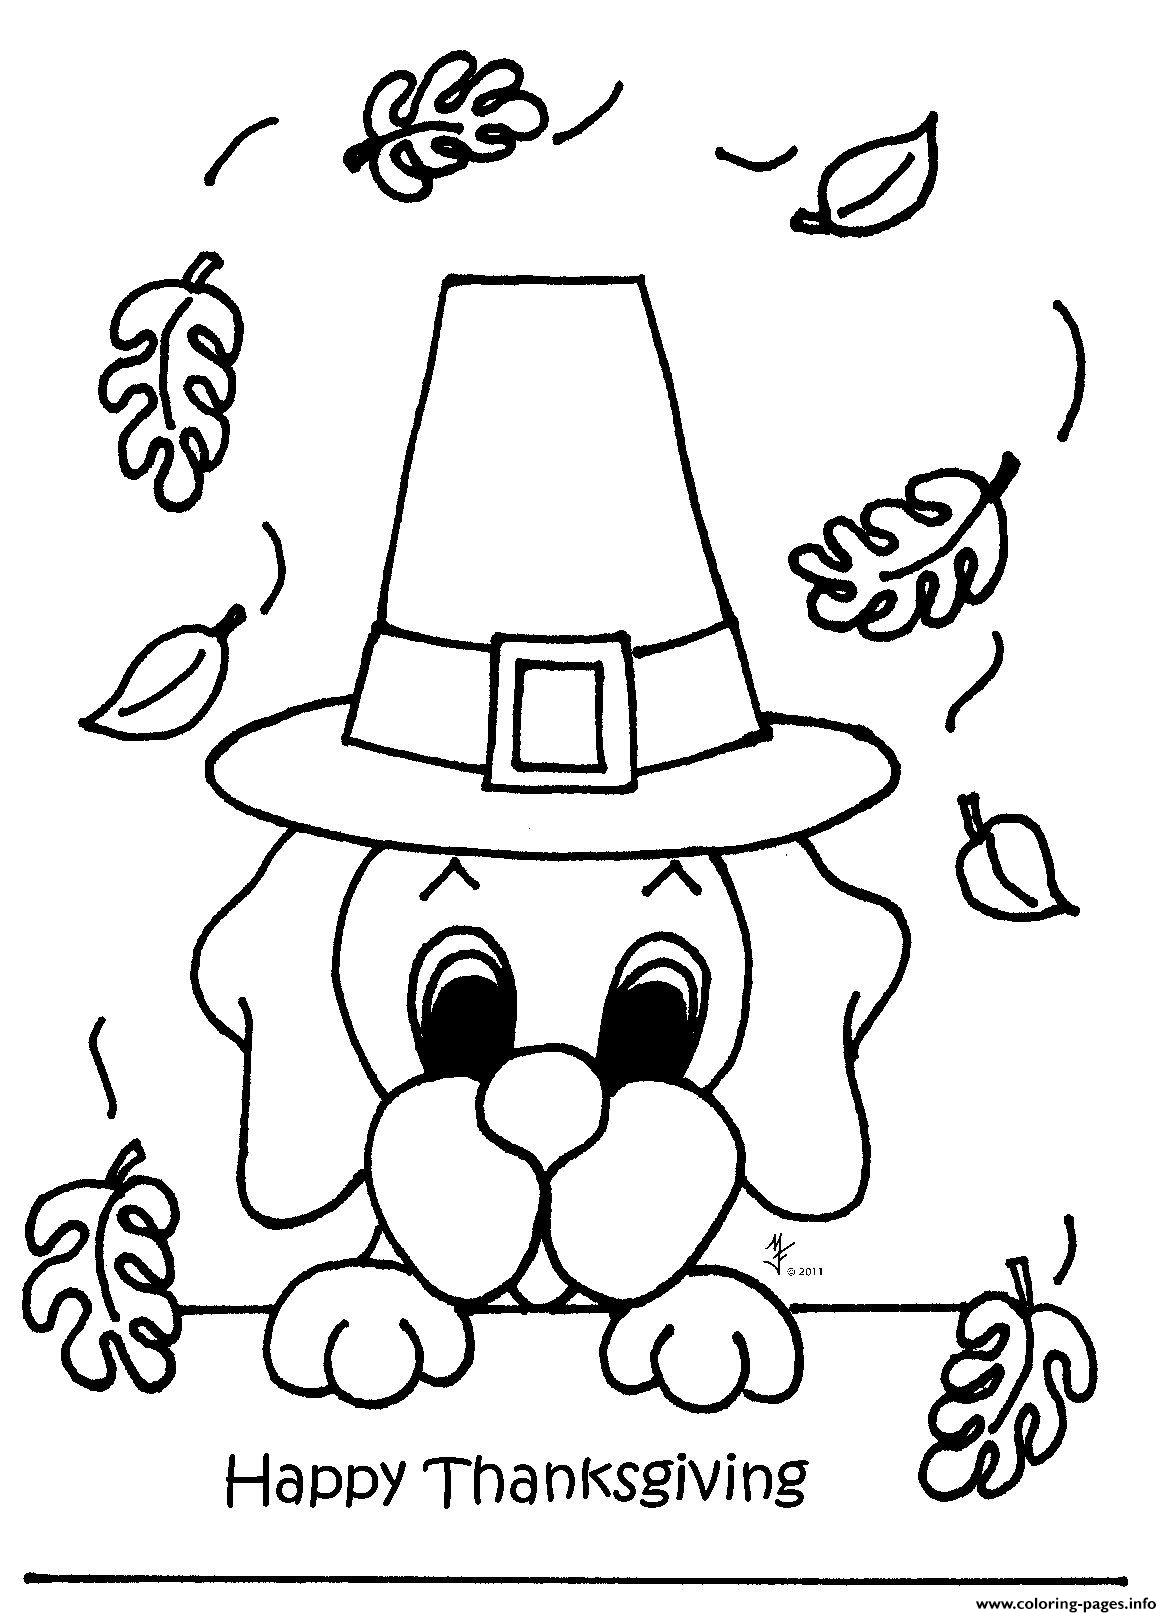 November Thanksgiving Coloring Pages Printable